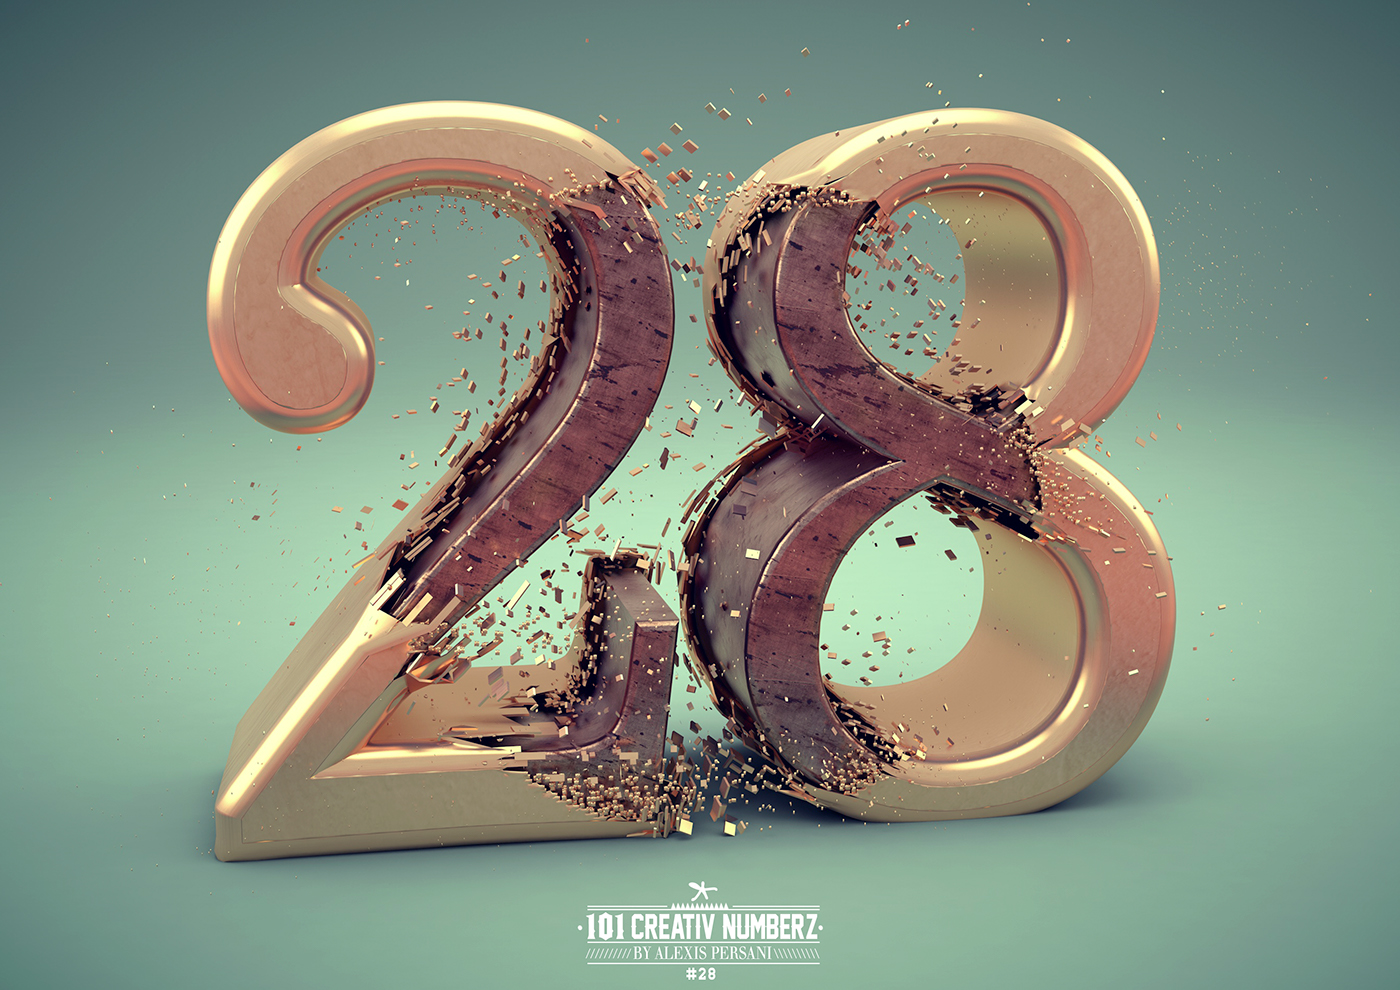 Outstanding 101 Creative Numbers Typography by Alexis Persani 26